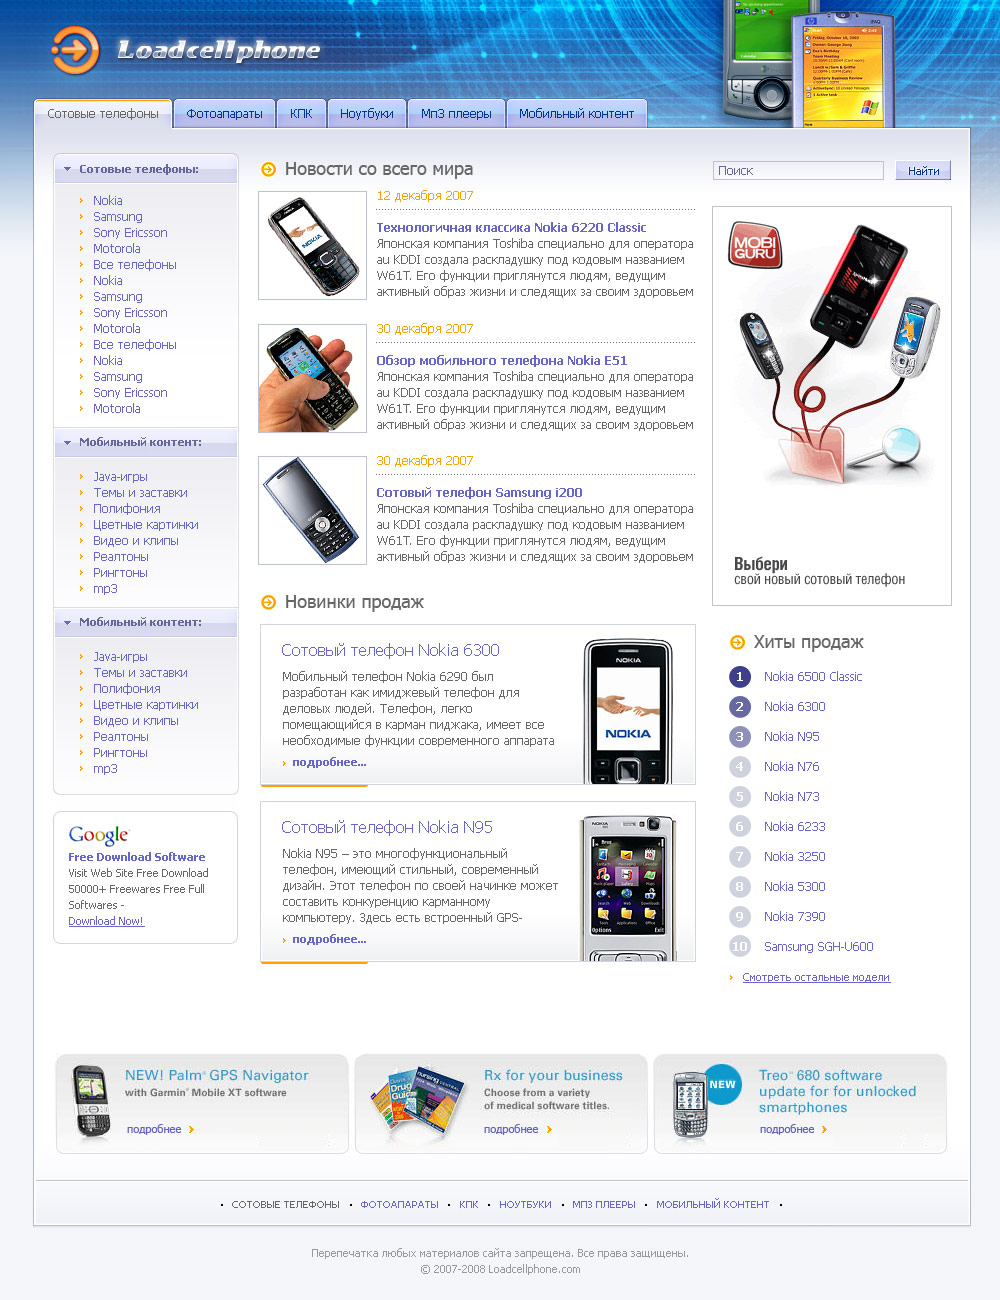 Loadcellphone online store design